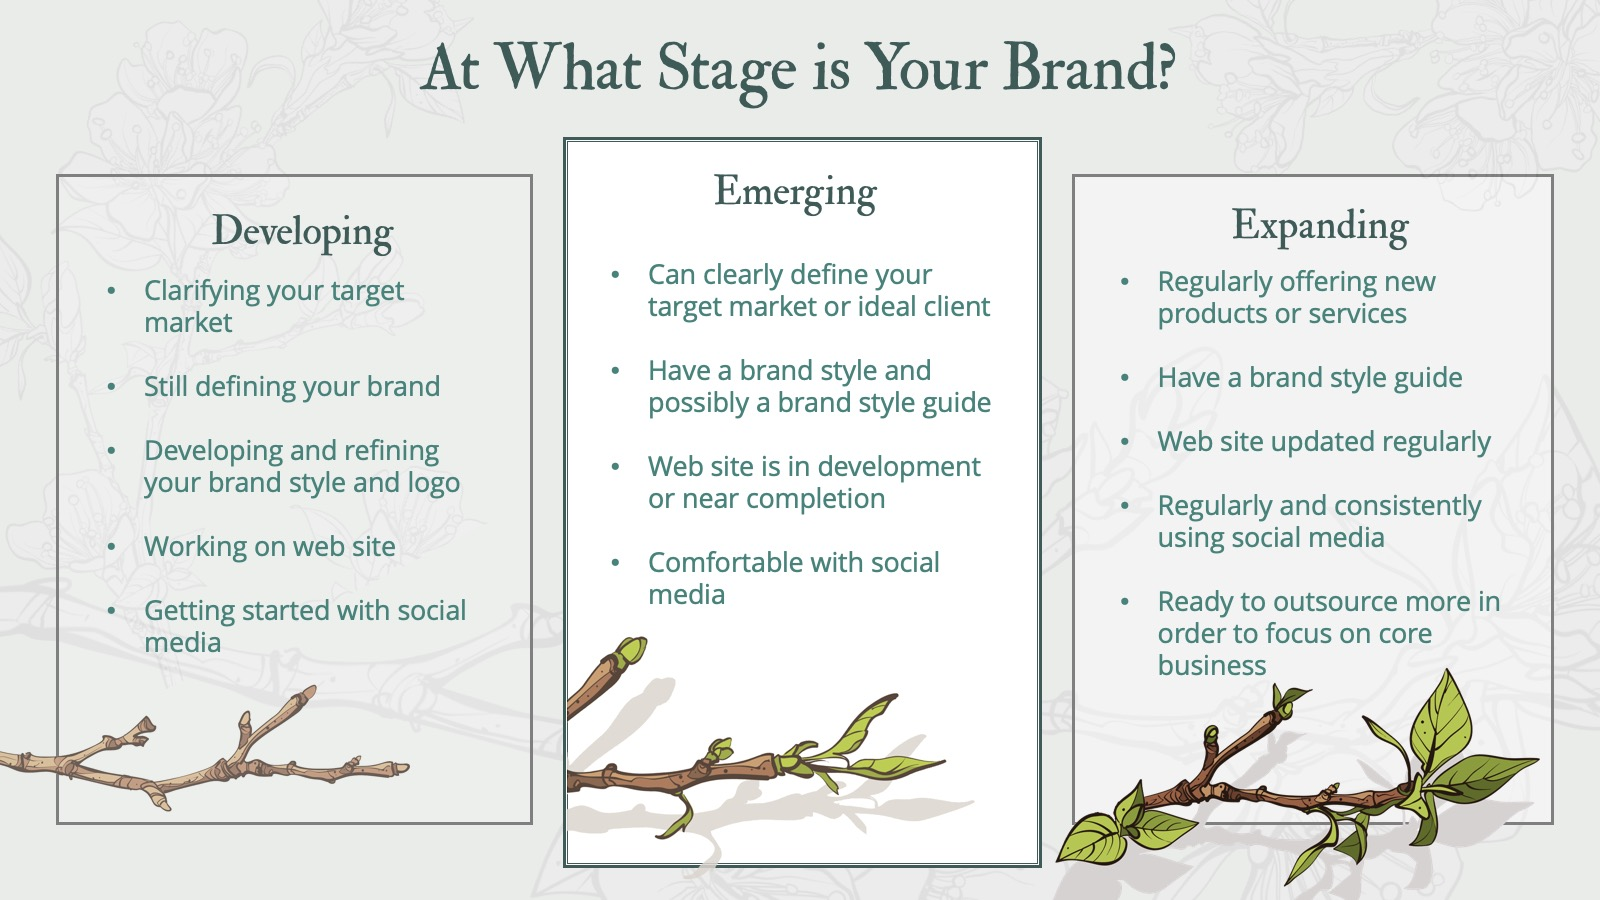 To get the most out of working together, yours is an emerging or expanding brand.